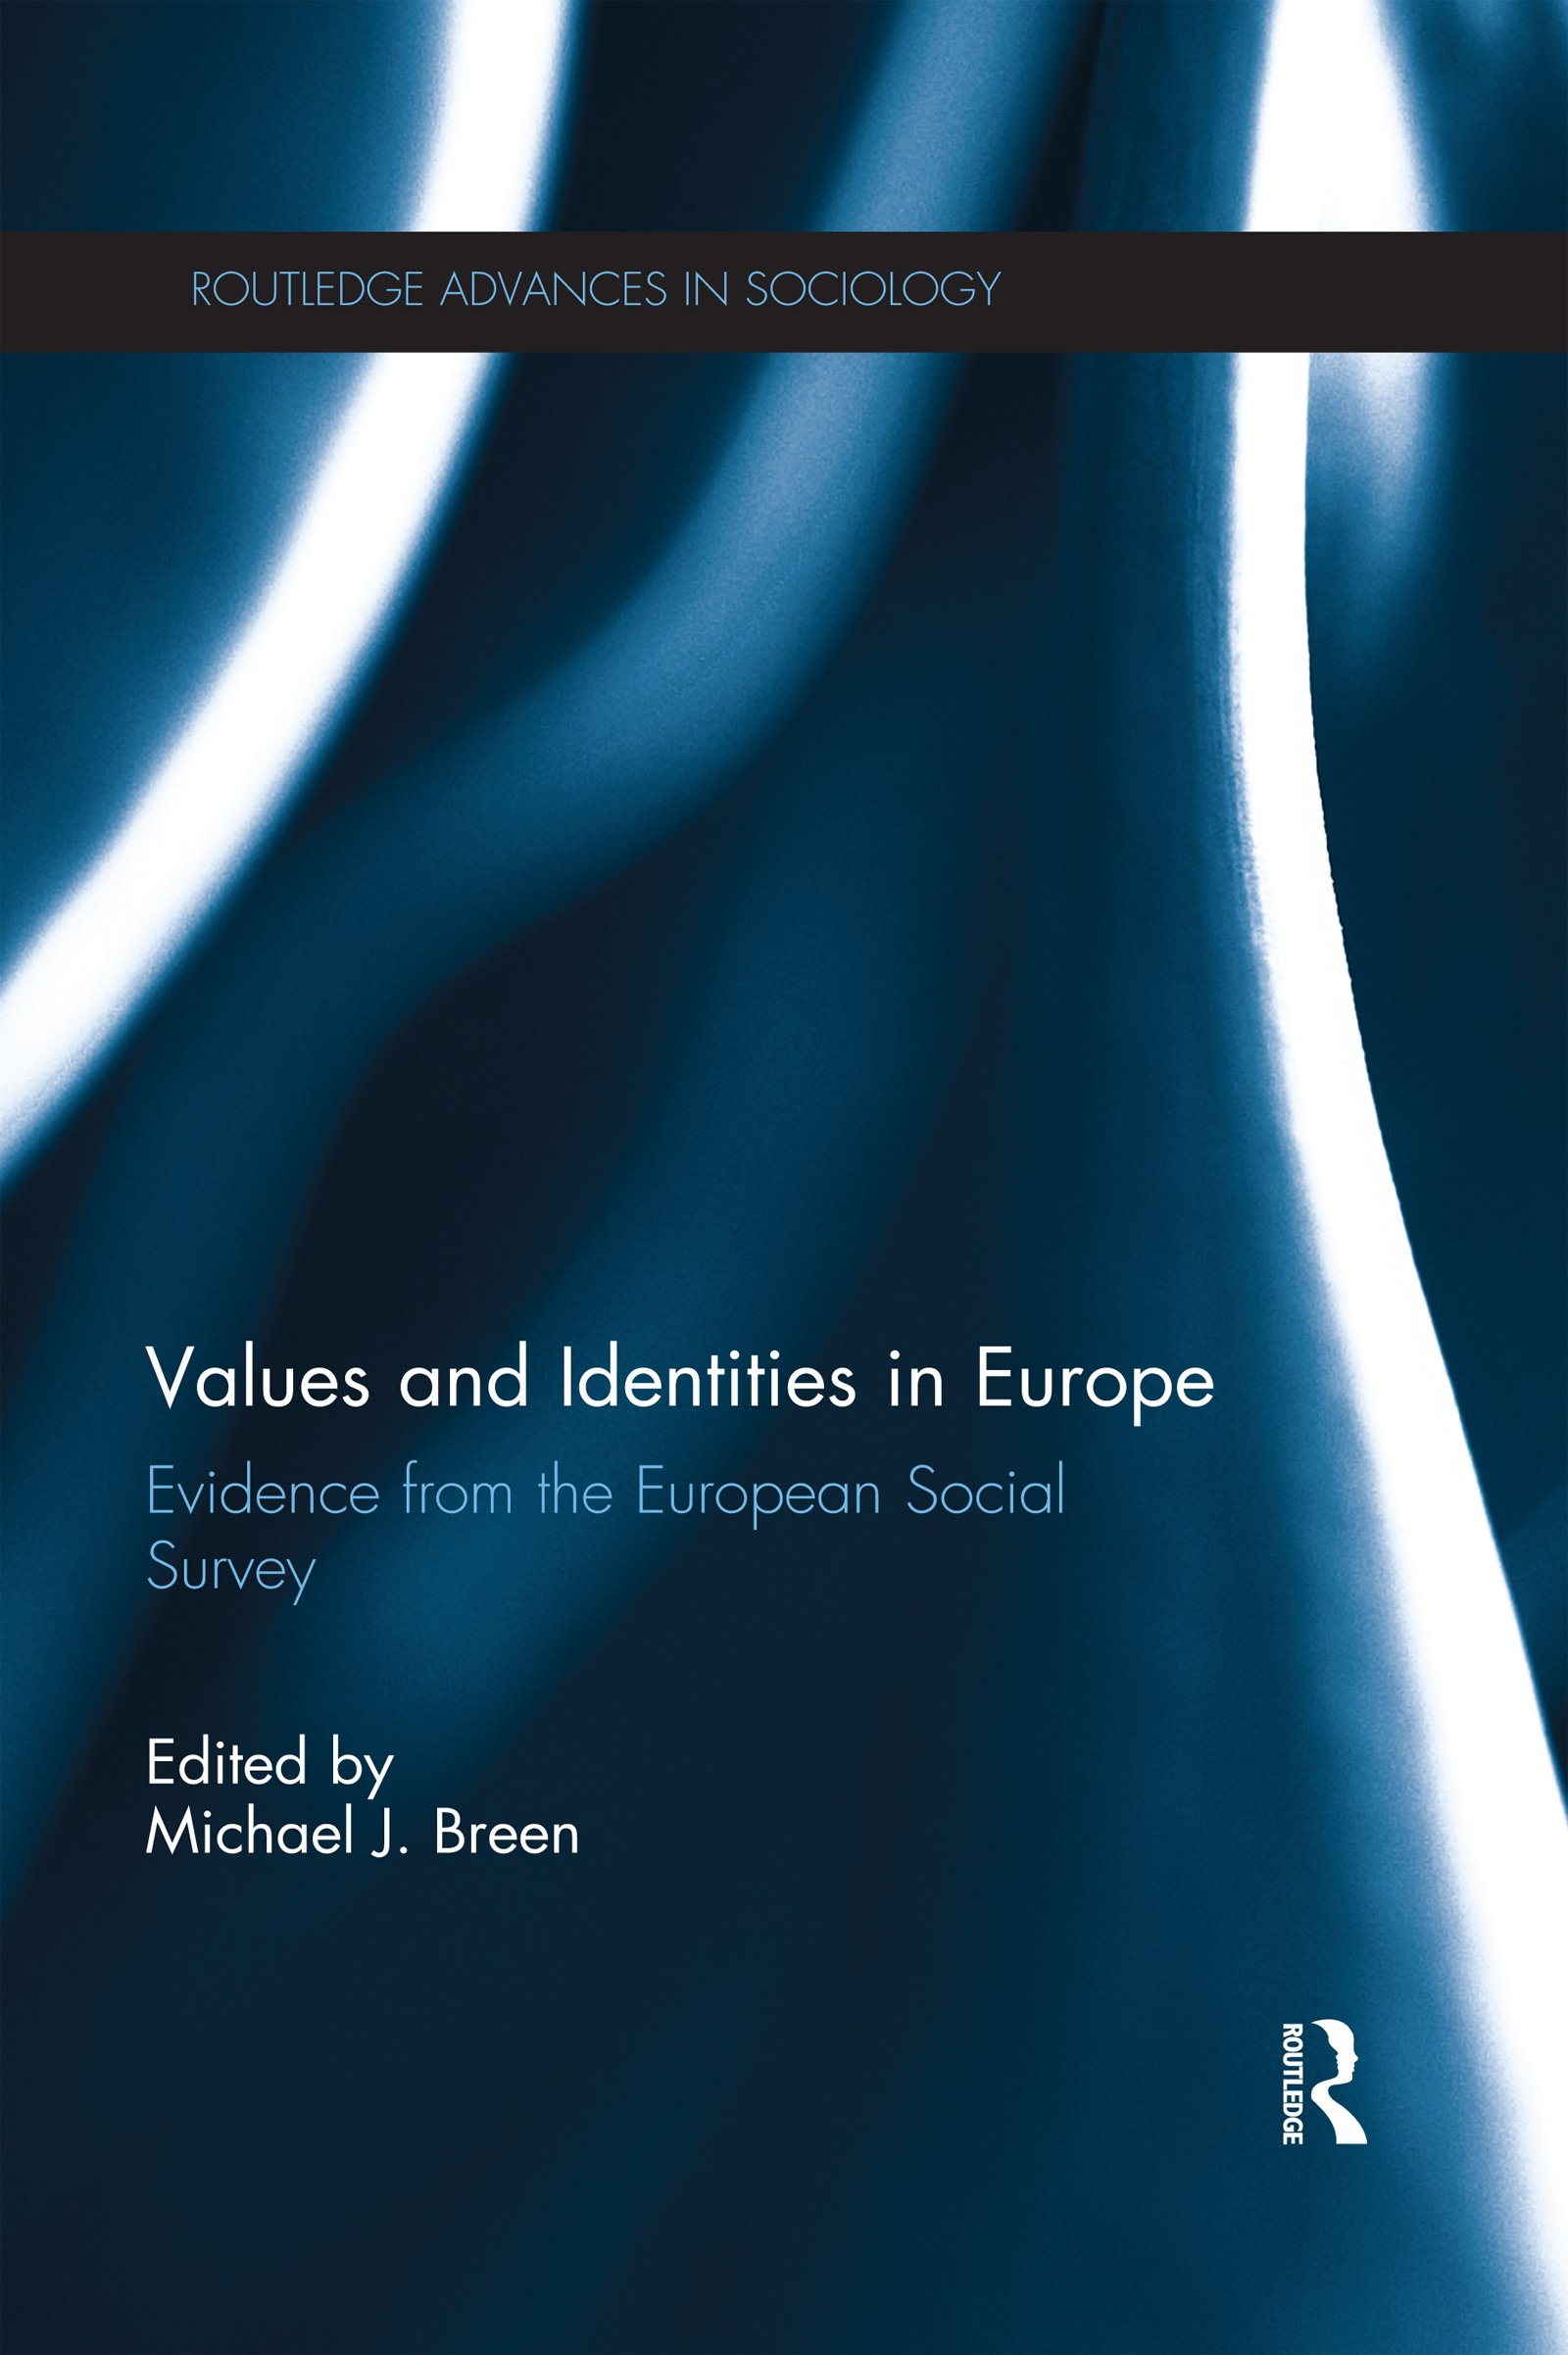 Values and Identities in Europe